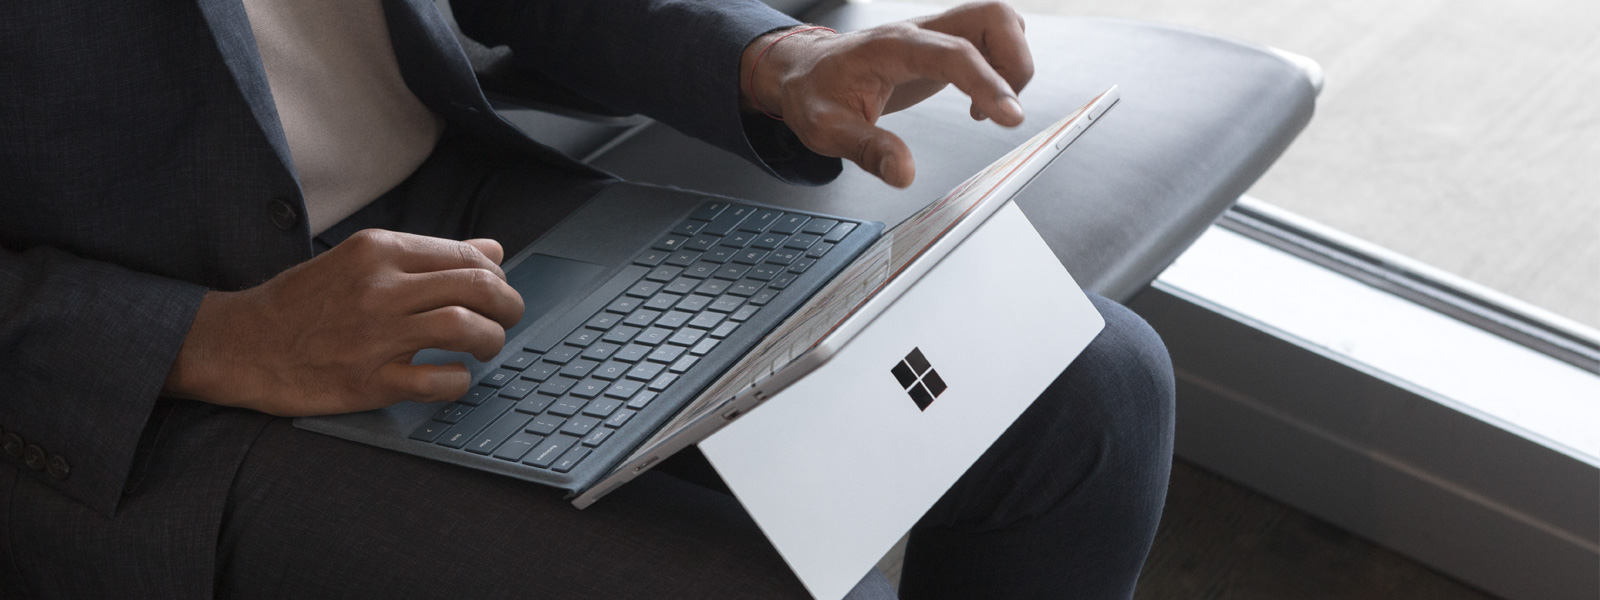 Two women use Surface Book 2 with keyboard folded under in a café setting.